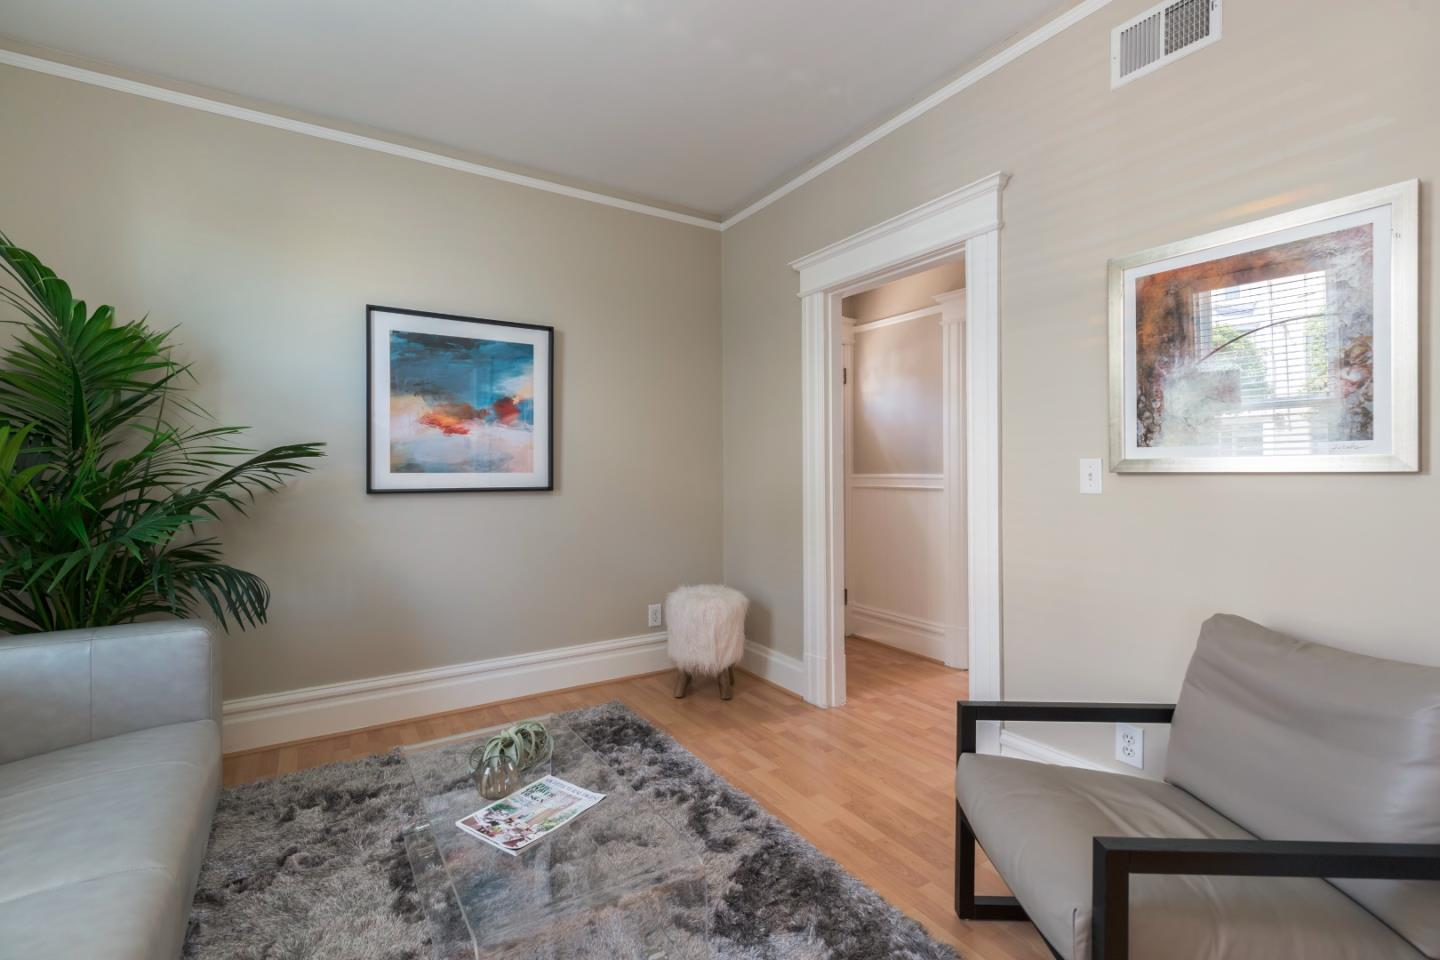 Additional photo for property listing at 2907 Octavia Street  San Francisco, California 94123 United States